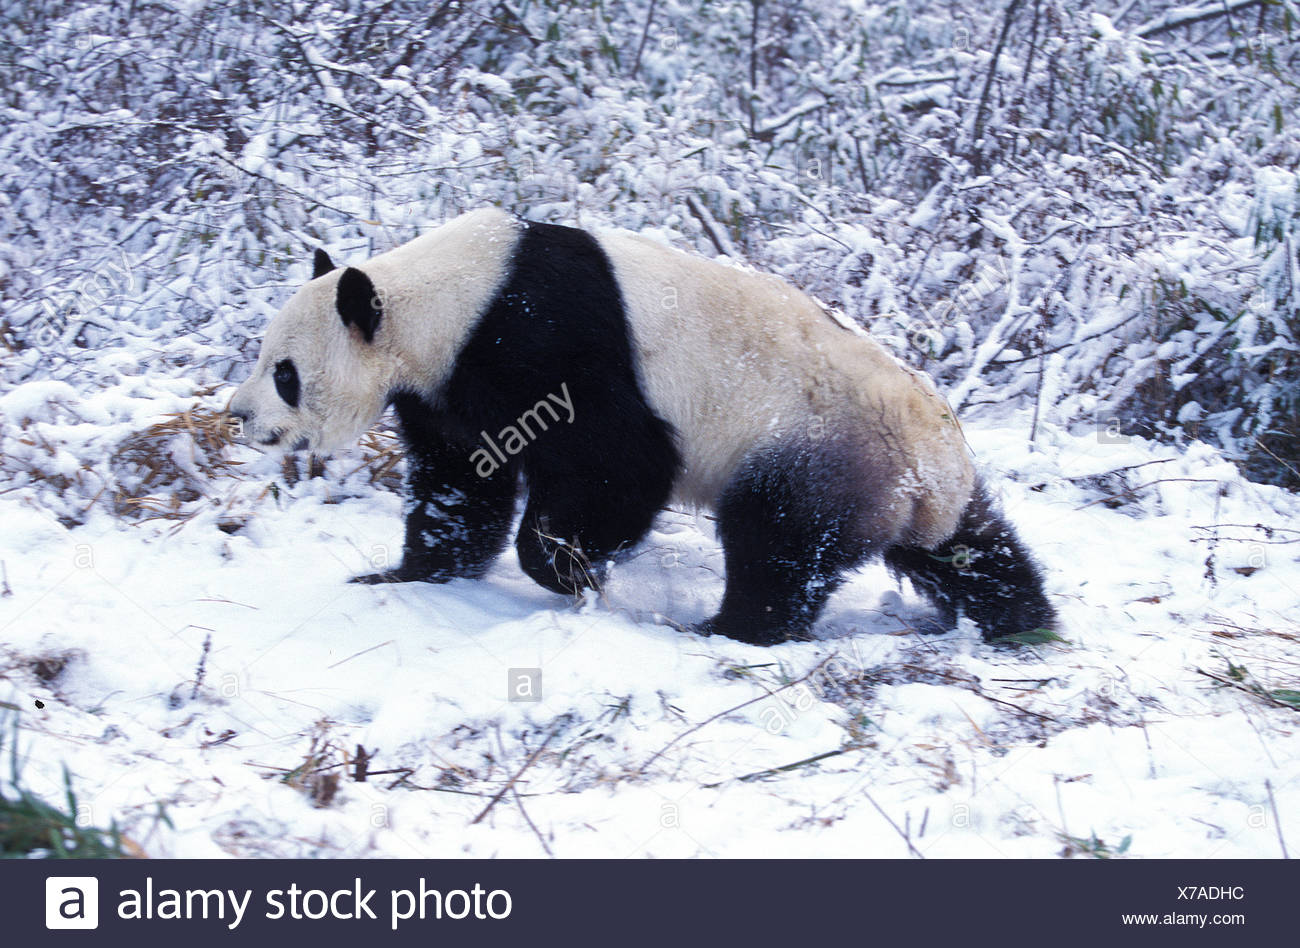 Giant Panda, ailuropoda melanoleuca, Adult on Snow, Wolong Reserve in China Stock Photo